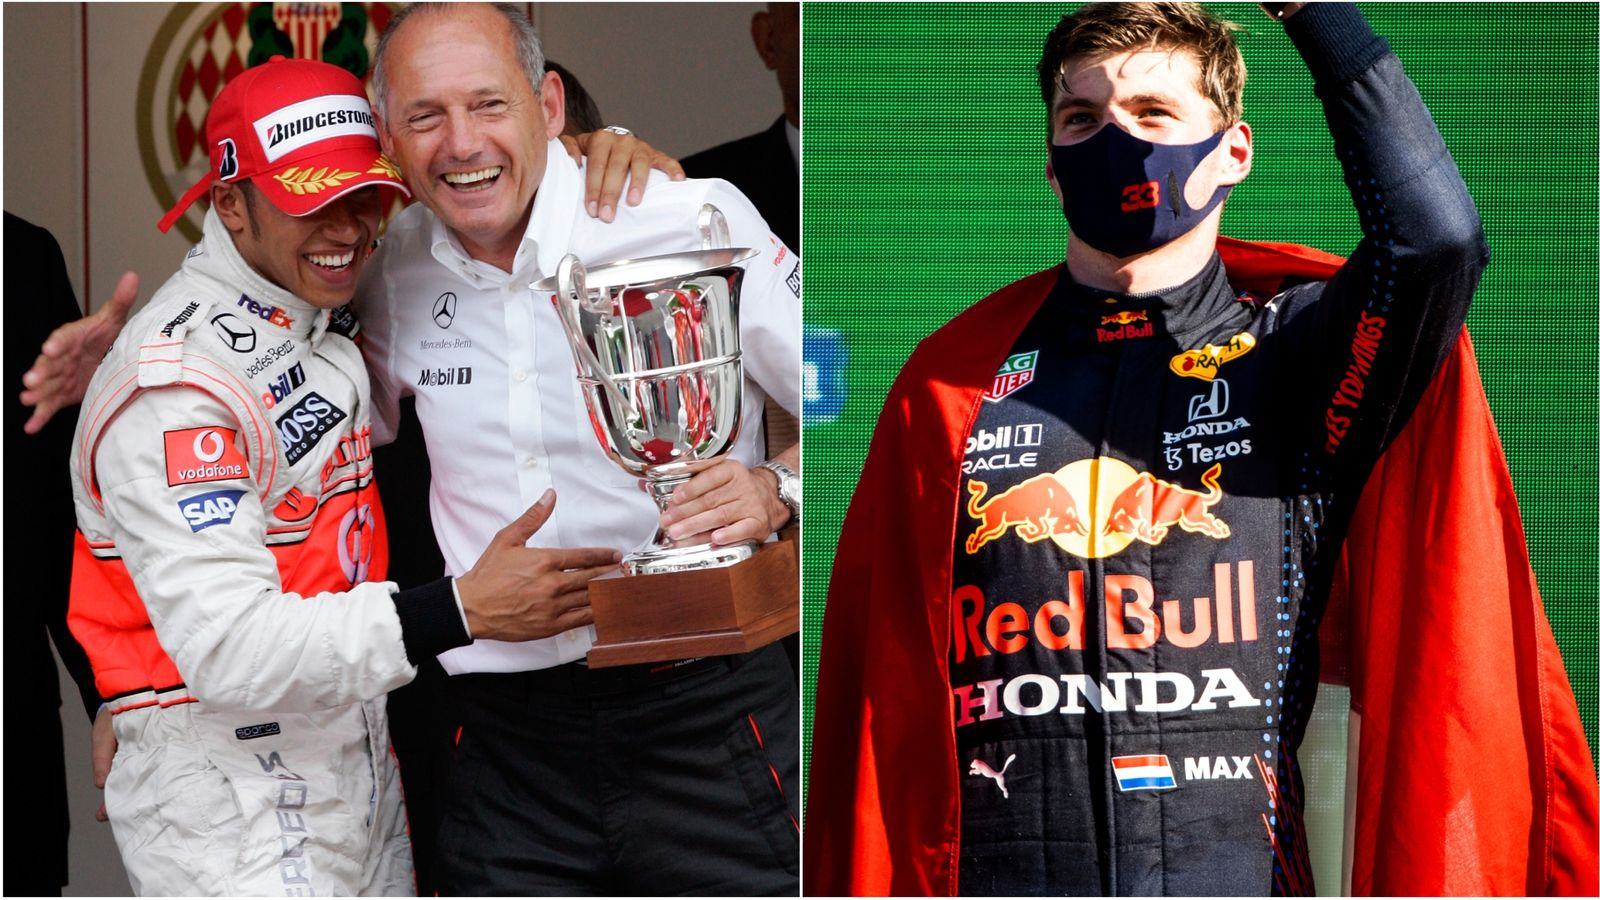 Ron Dennis tips Max to beat former protege Hamilton to title